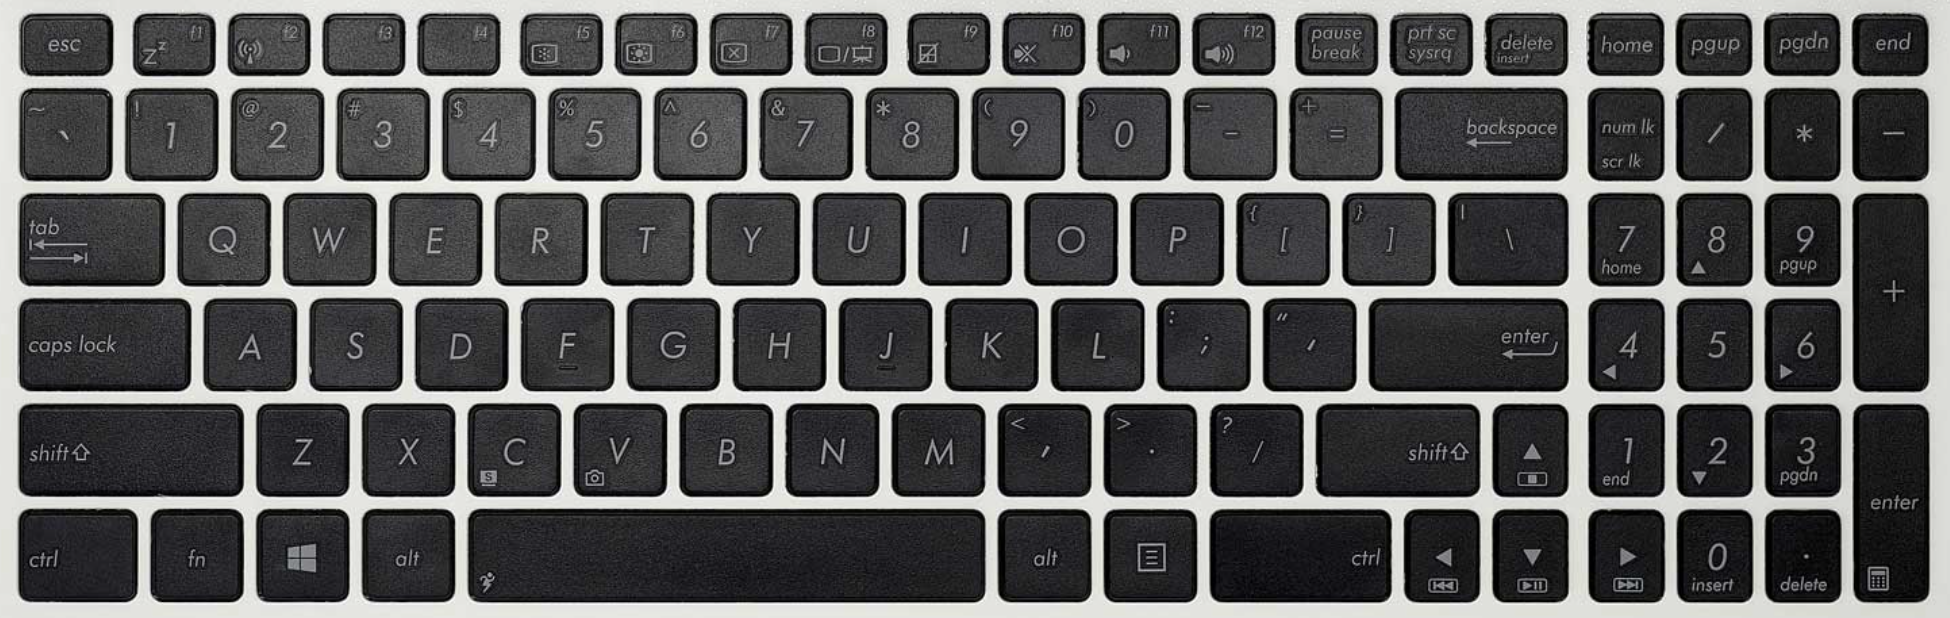 Asus X550C Laptop Keyboard Key Replacement